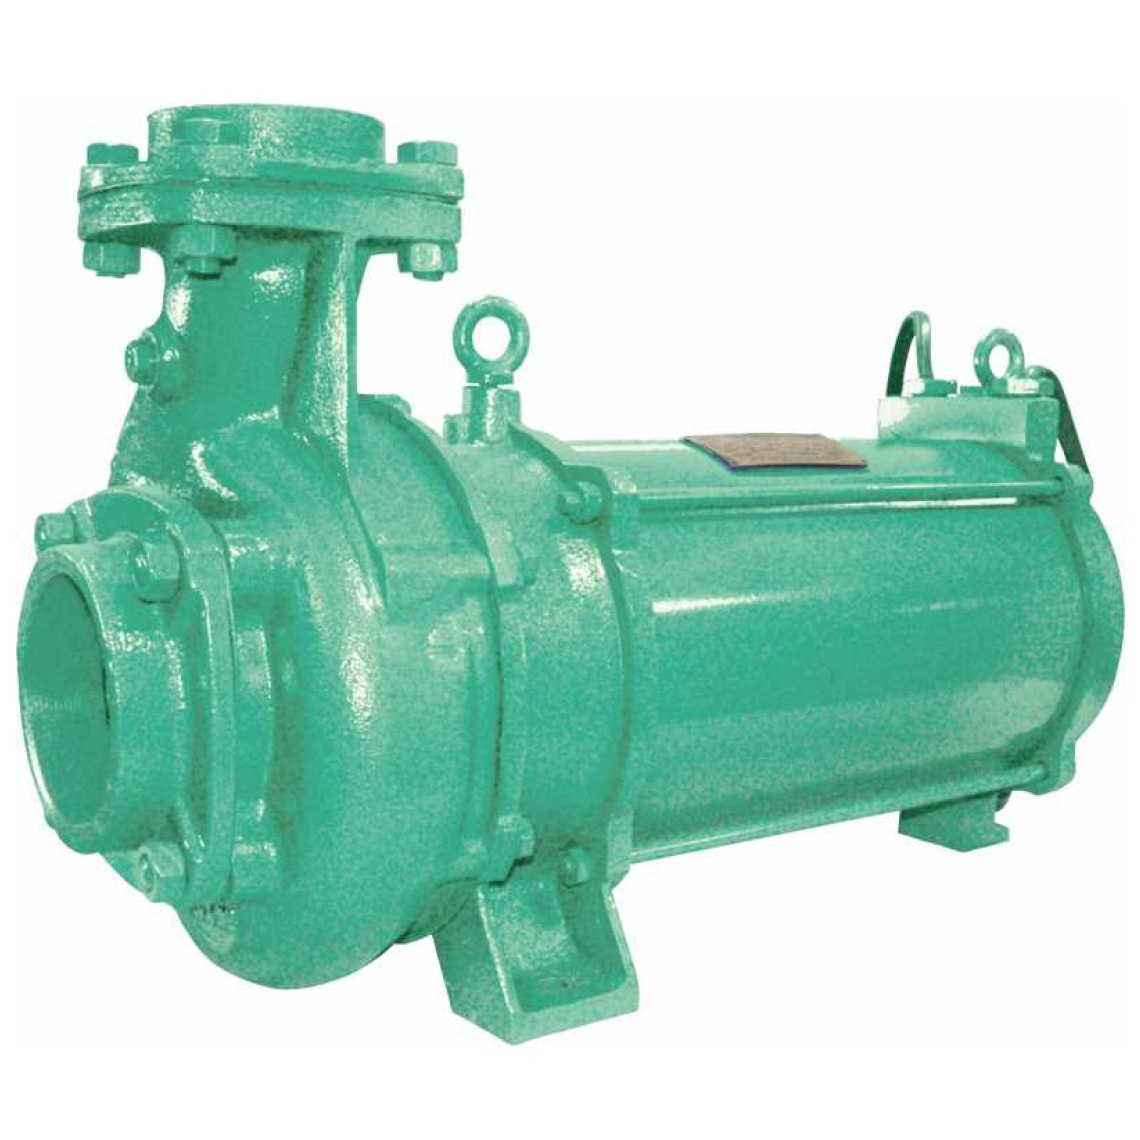 Products And Expertise Wilo Single Phase Starter For Submersible Pump Horizontal Open Well Pumpset 3 Mpo